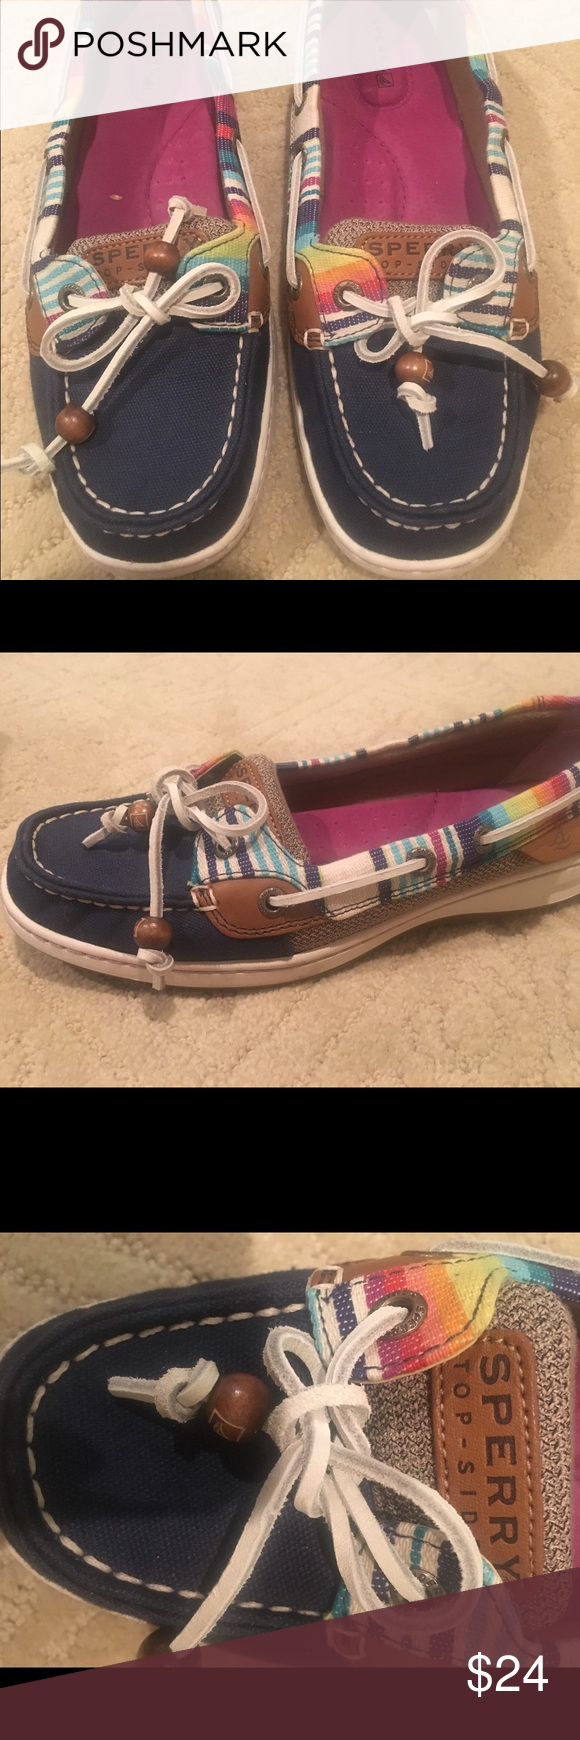 SPERRY Size 8 US Sperry Top-Sider Shoes Flats & Loafers